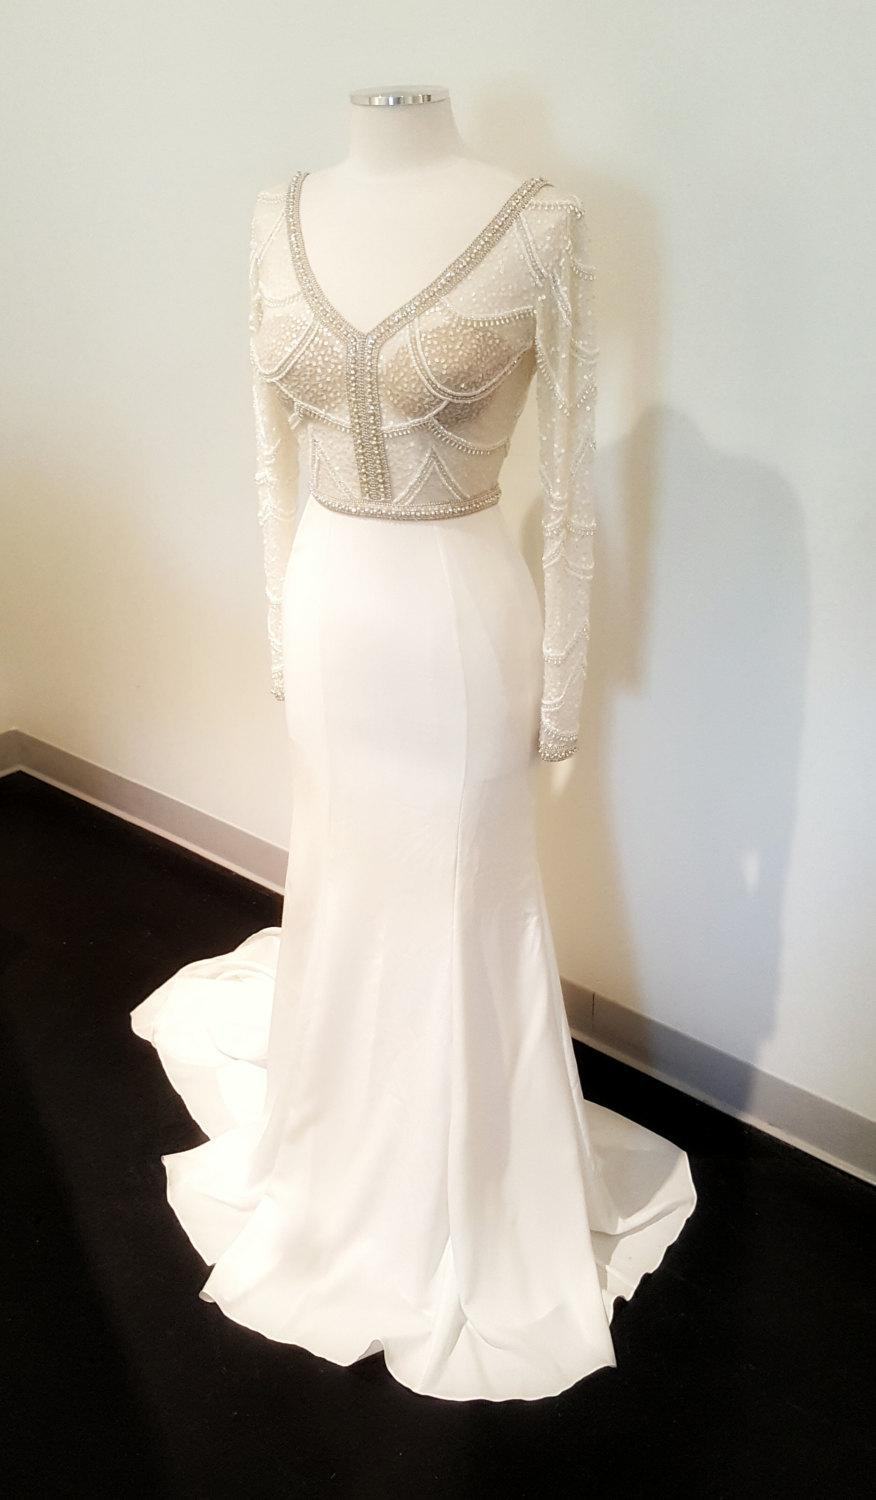 Mariage - Hand beaded and embroidered fitted wedding dress, couture, geometric unique wedding dress, sheer and sexy wedding dress, wedding dress shop